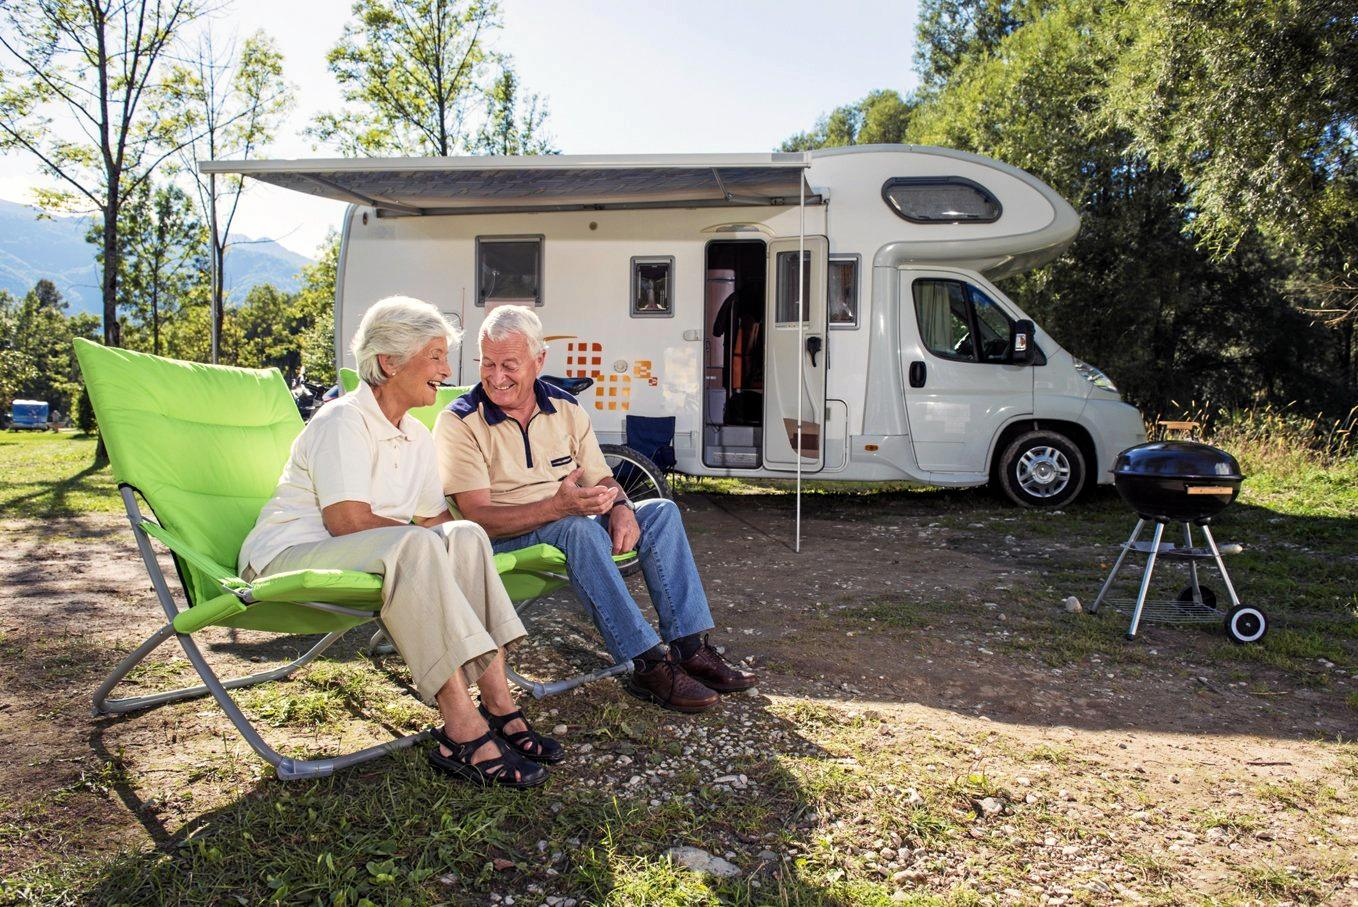 Self-contained camping has become huge world-wide.